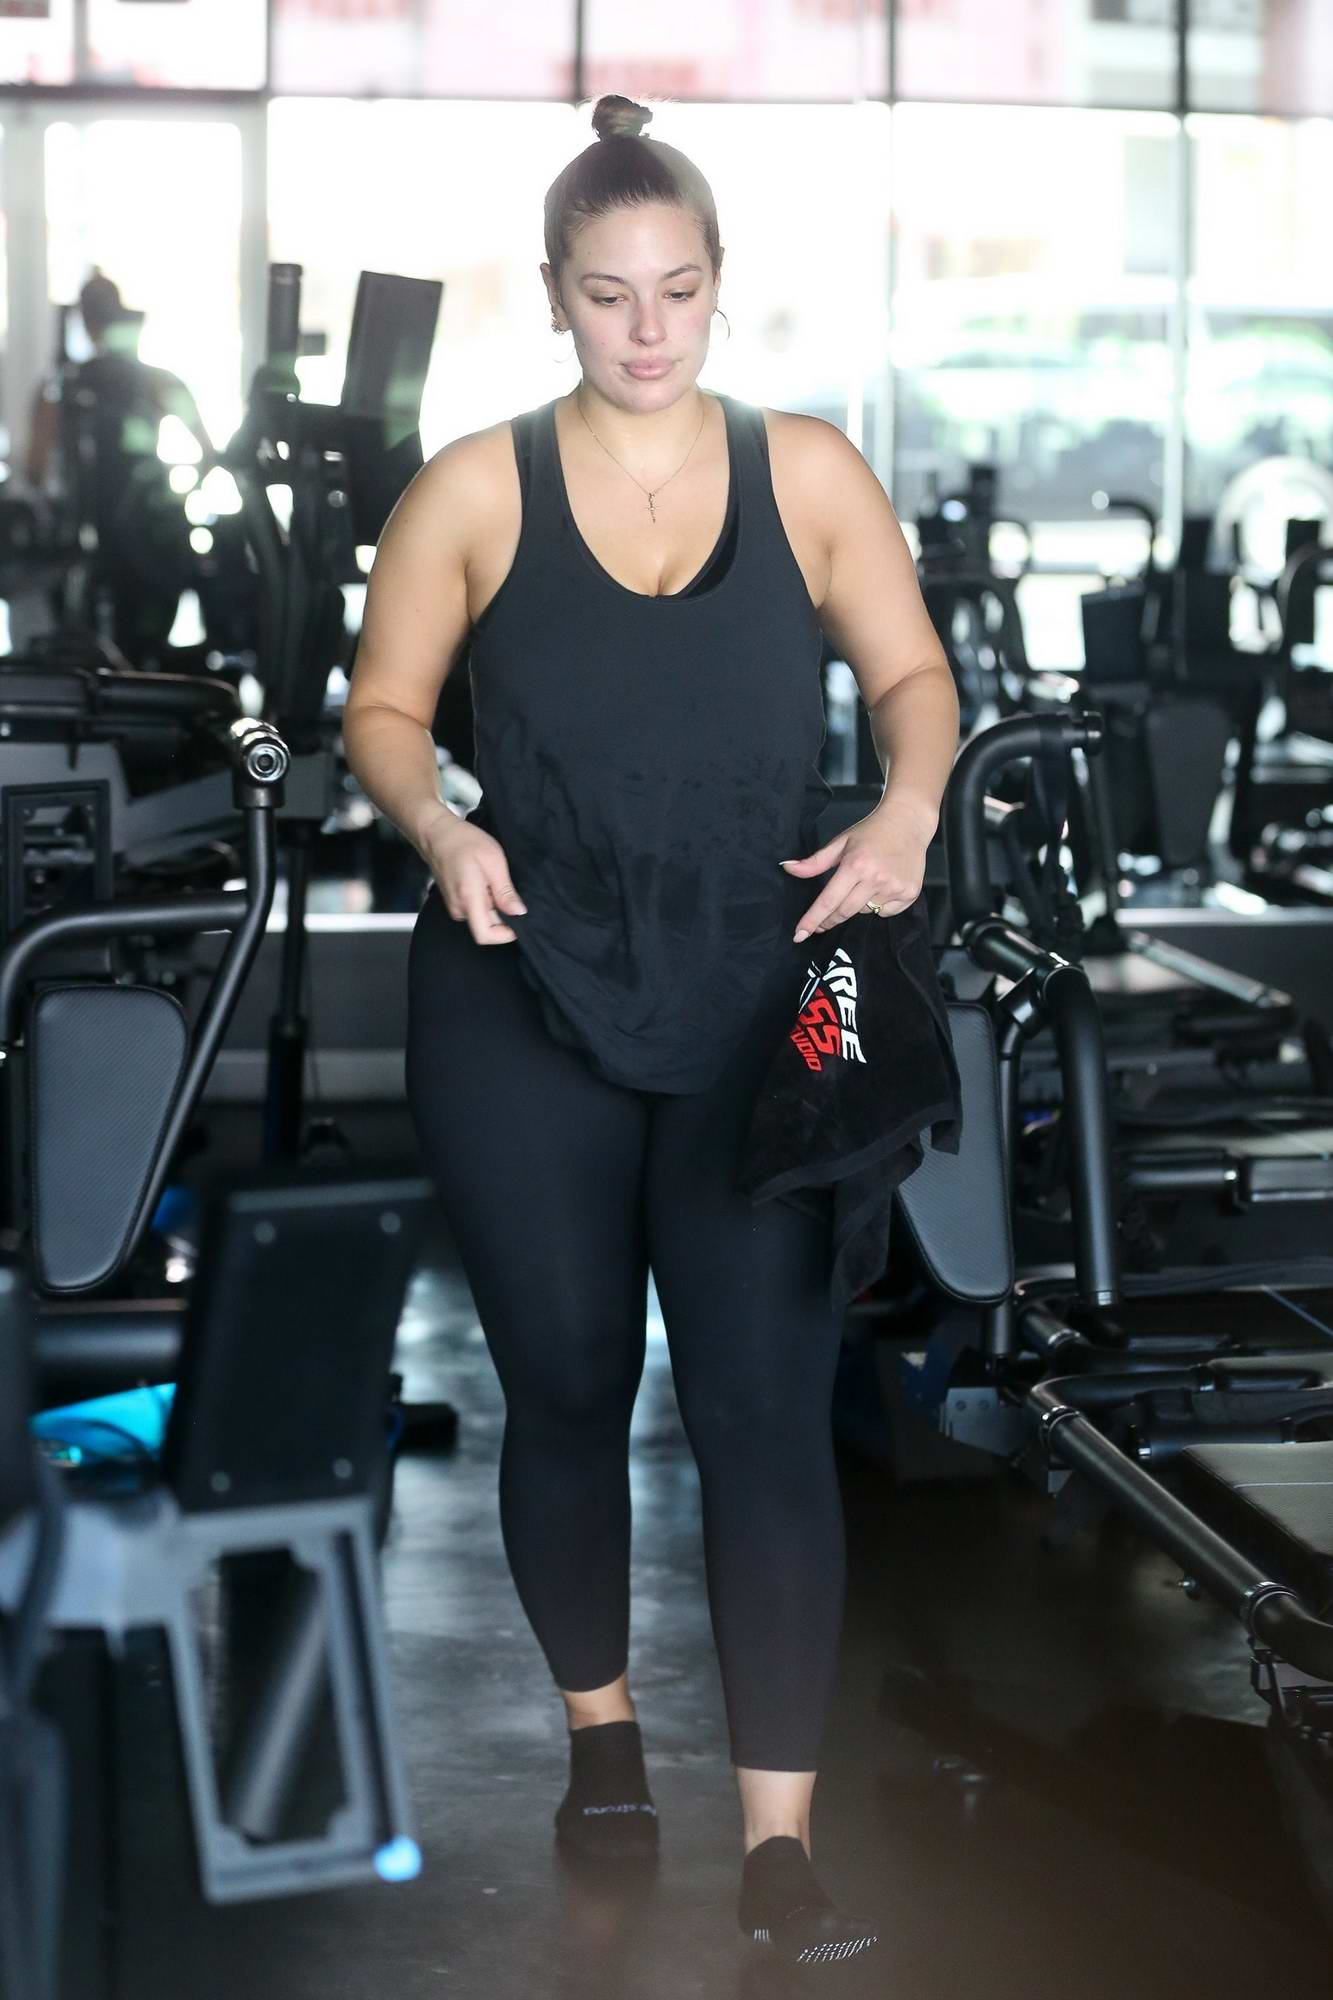 e8fea209ebbca Ashley Graham Working Out in a Gym with her Husband